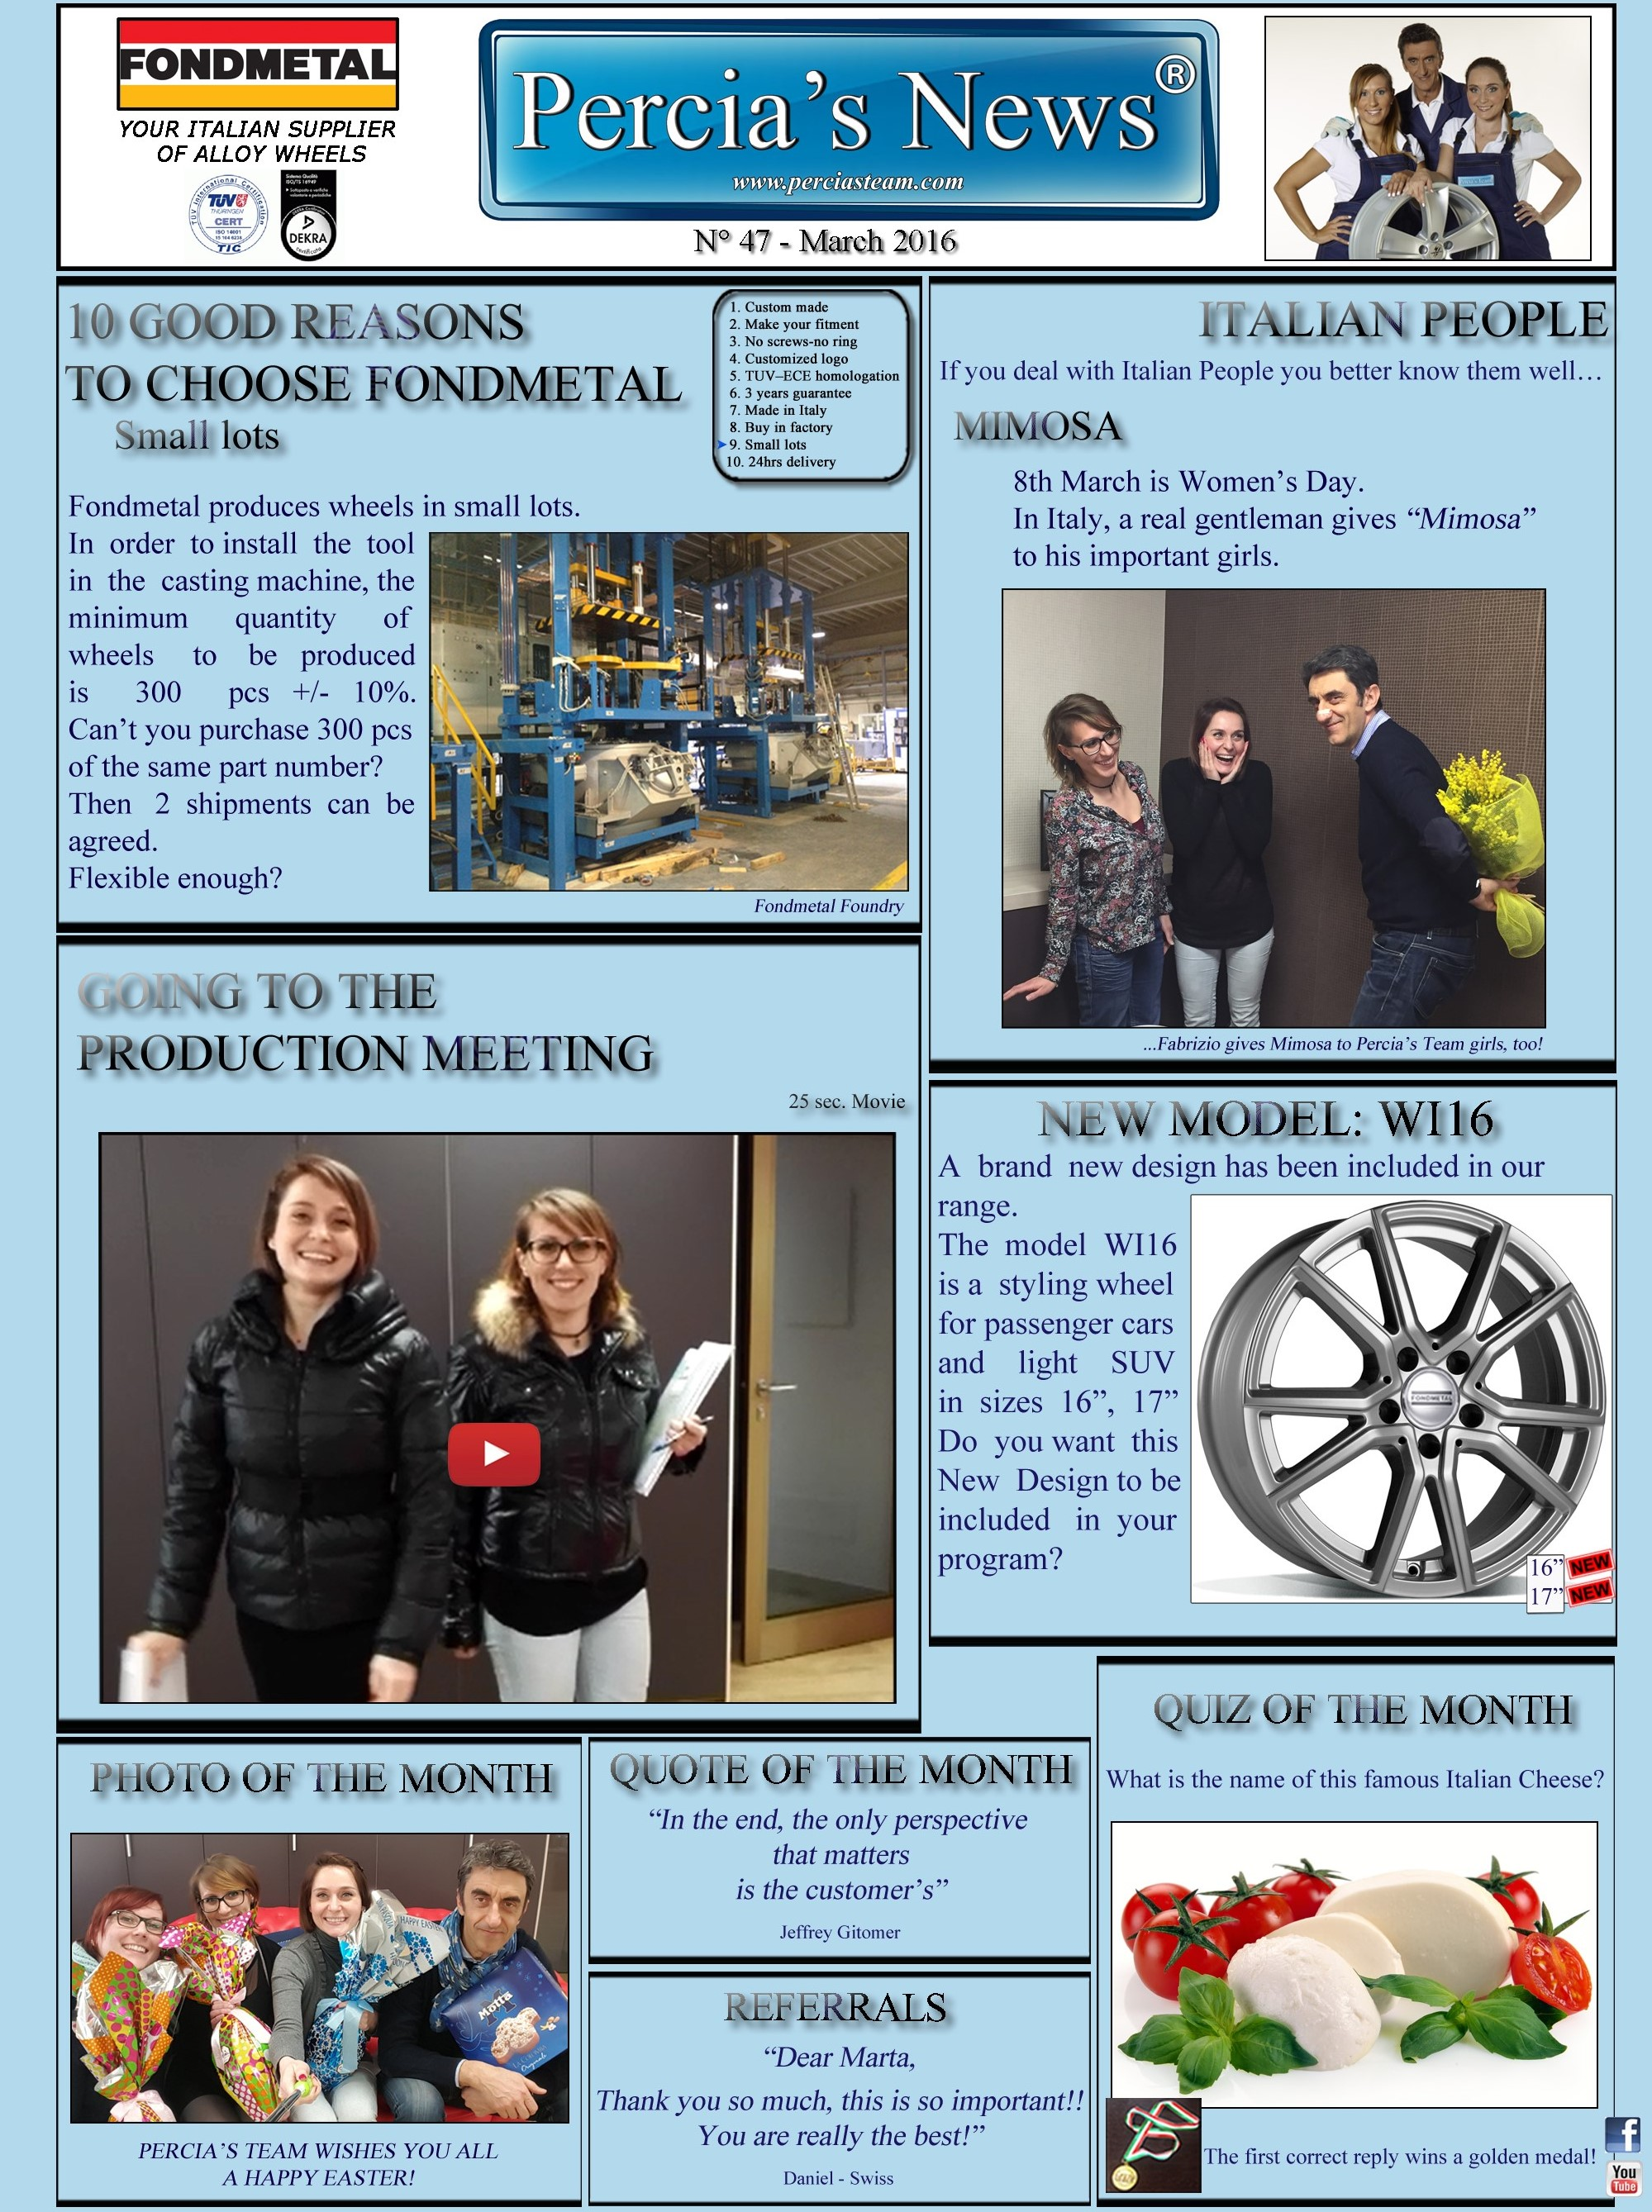 PERCIA'S NEWS - MARCH 2016